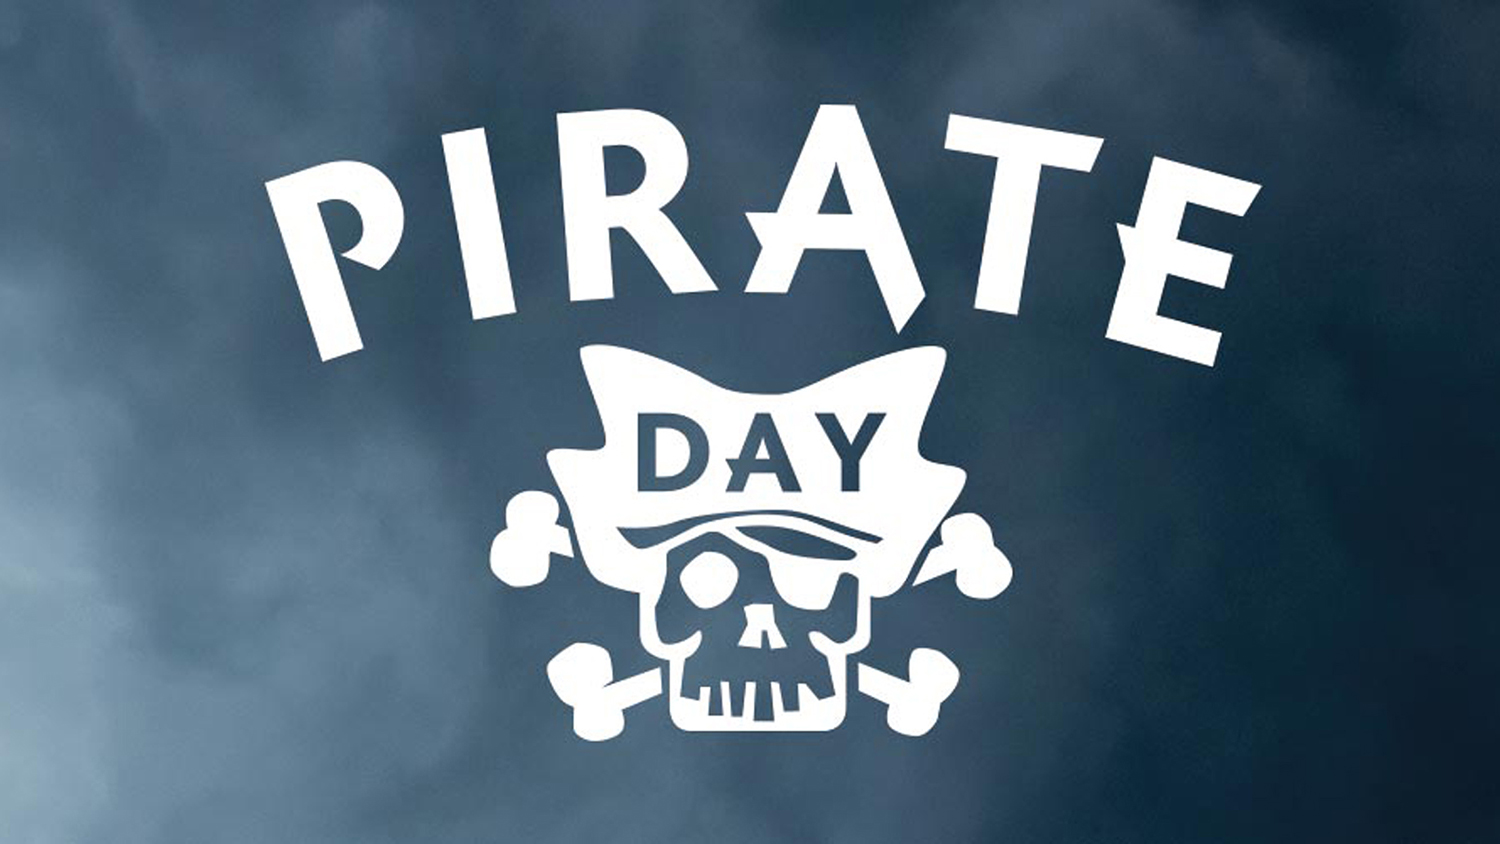 RNLI Pirate Day logo